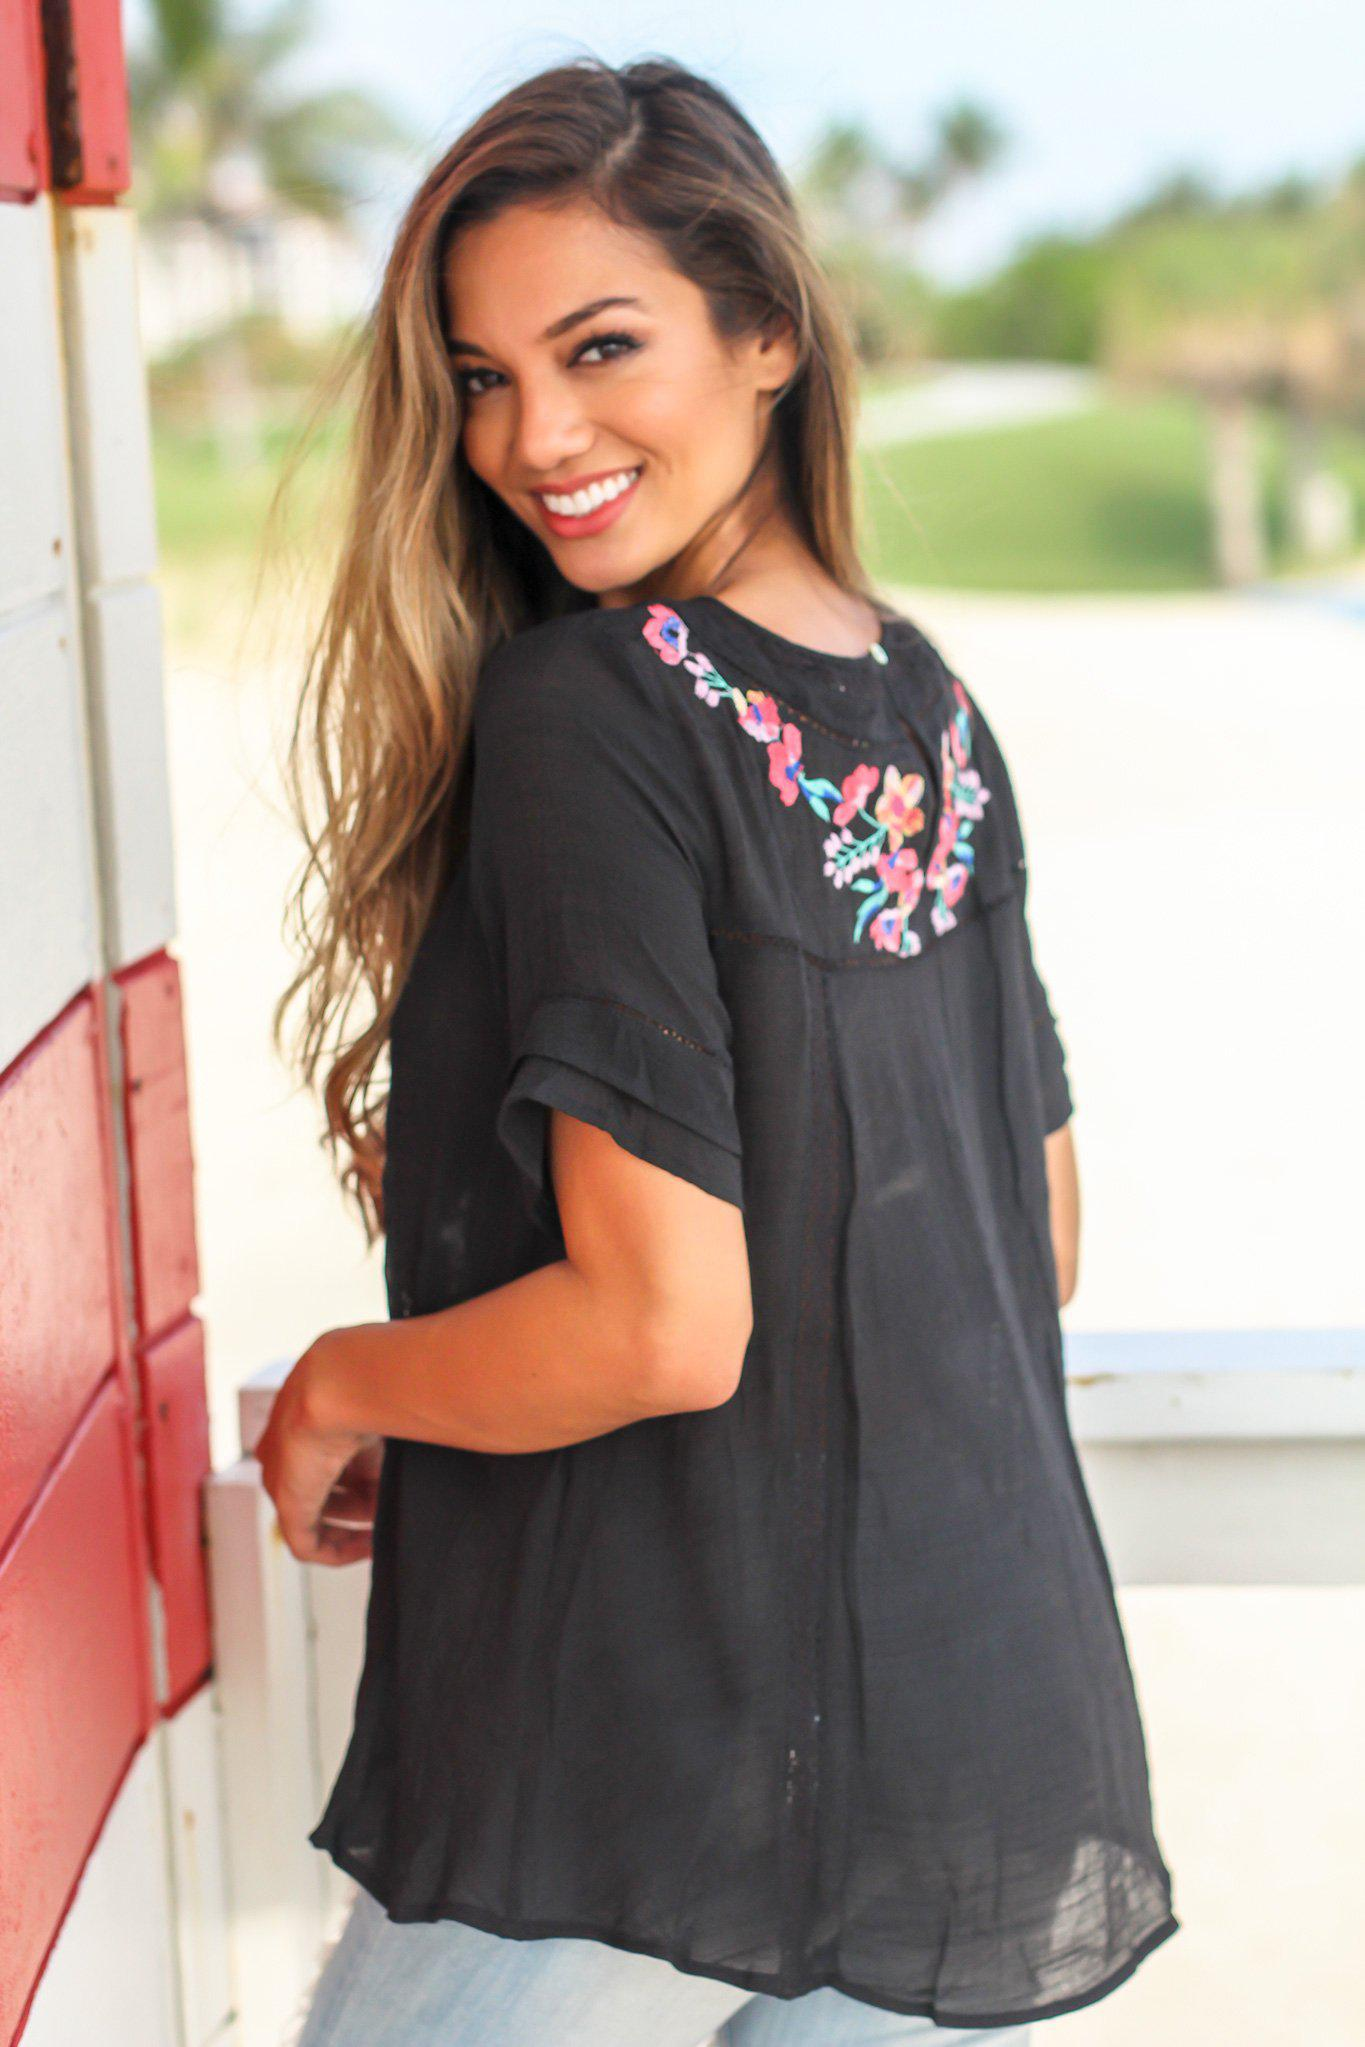 Black Short Sleeve Top with Floral Embroidery